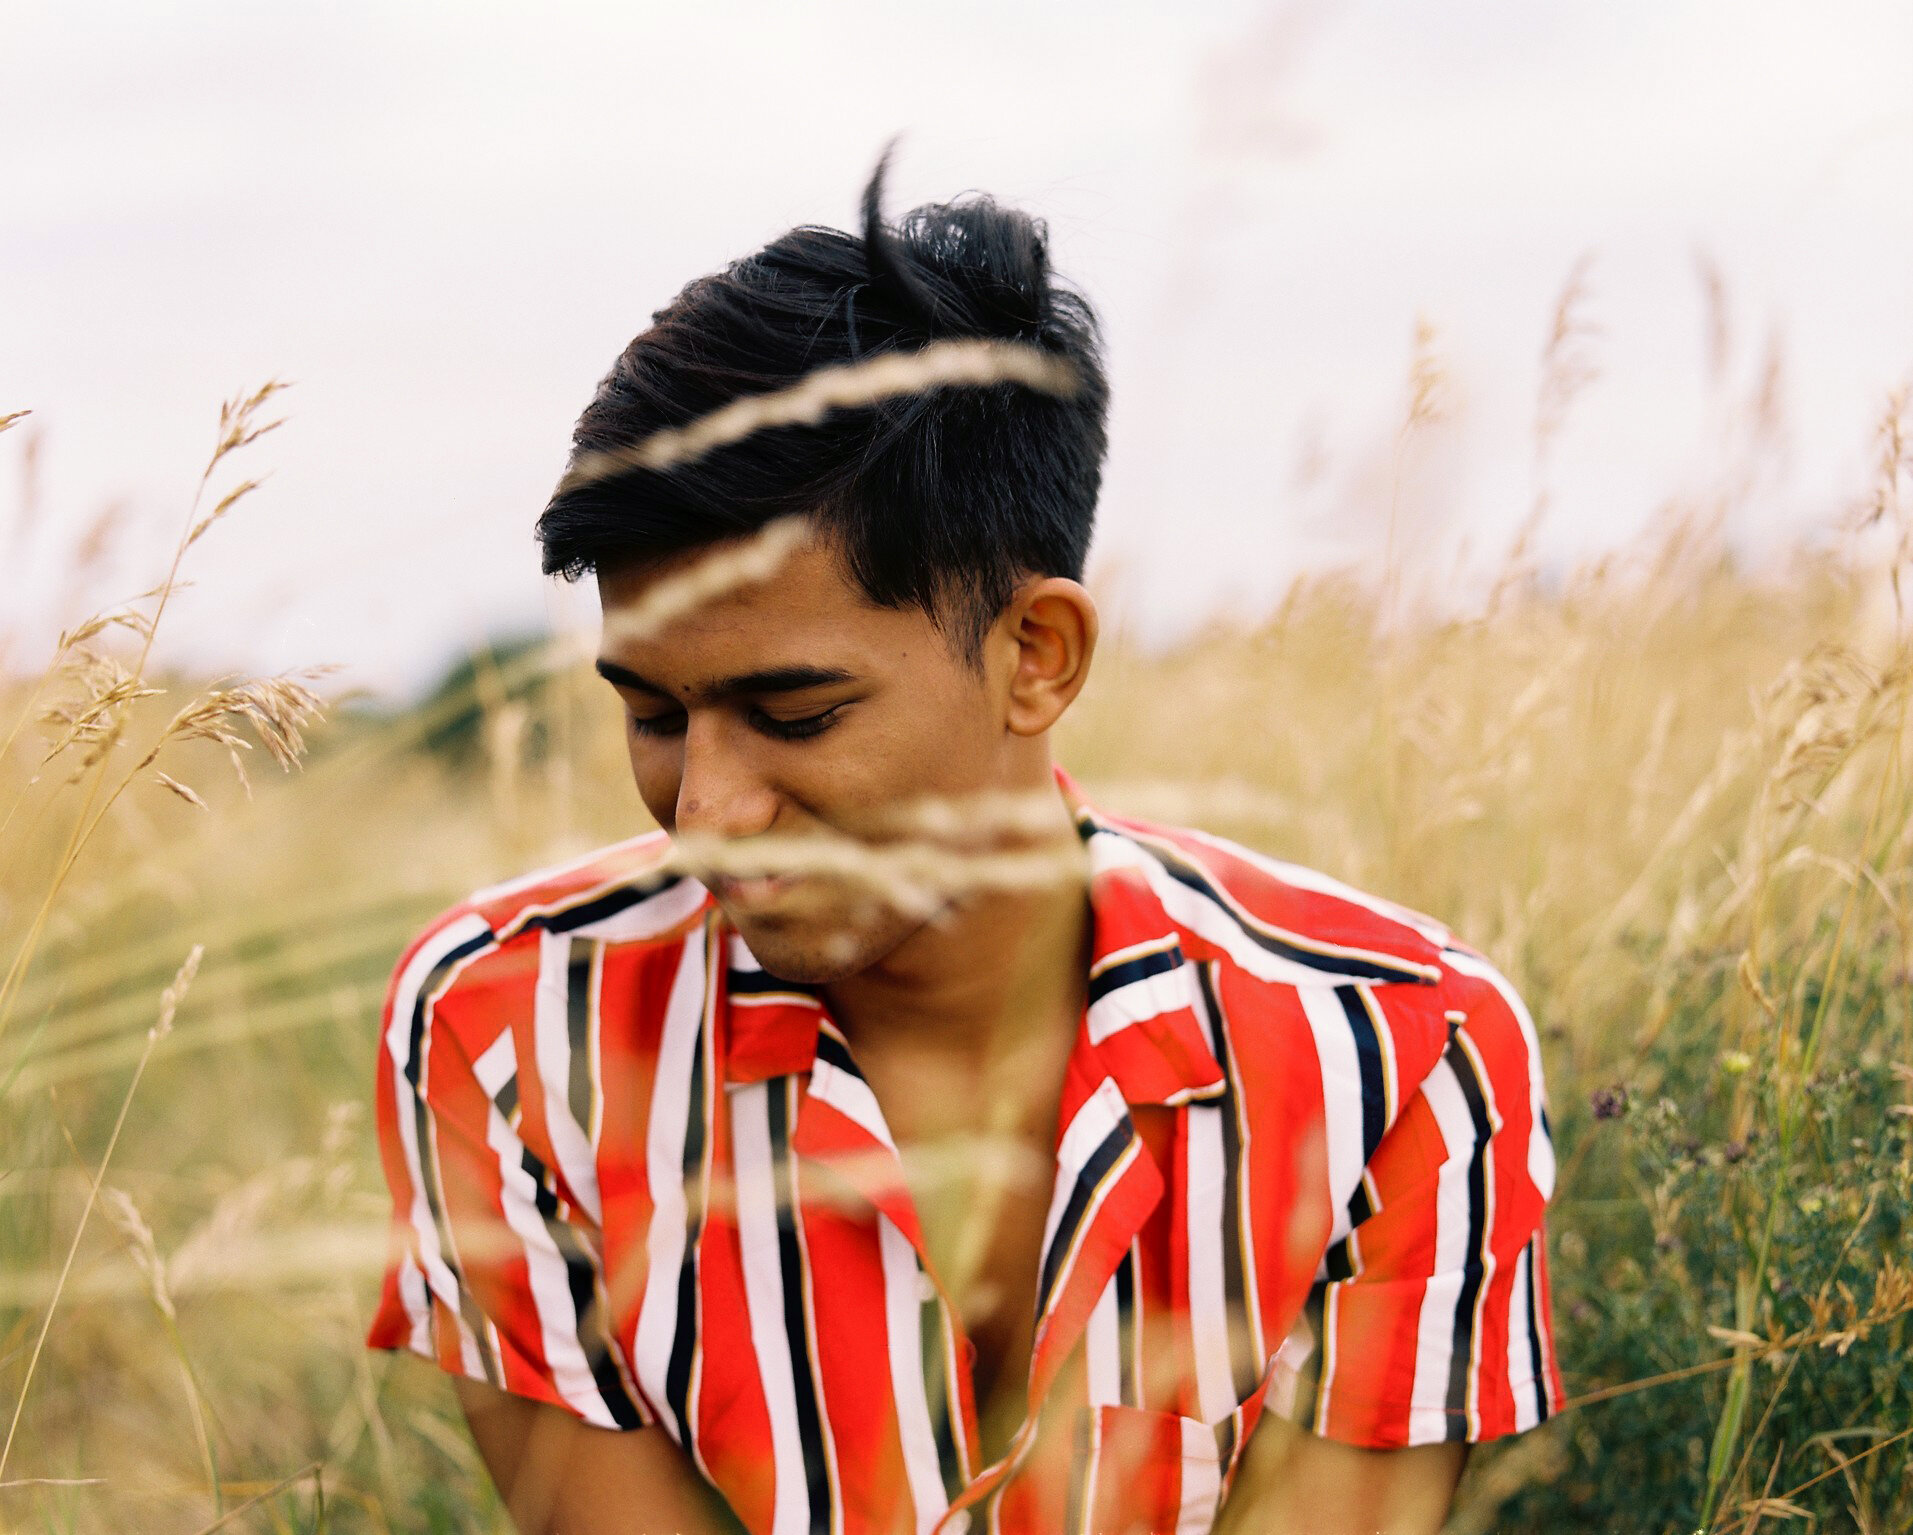 Introducing – Dameer - Music is his sanctuary: transforming memories into uplifting psychedelic pop.